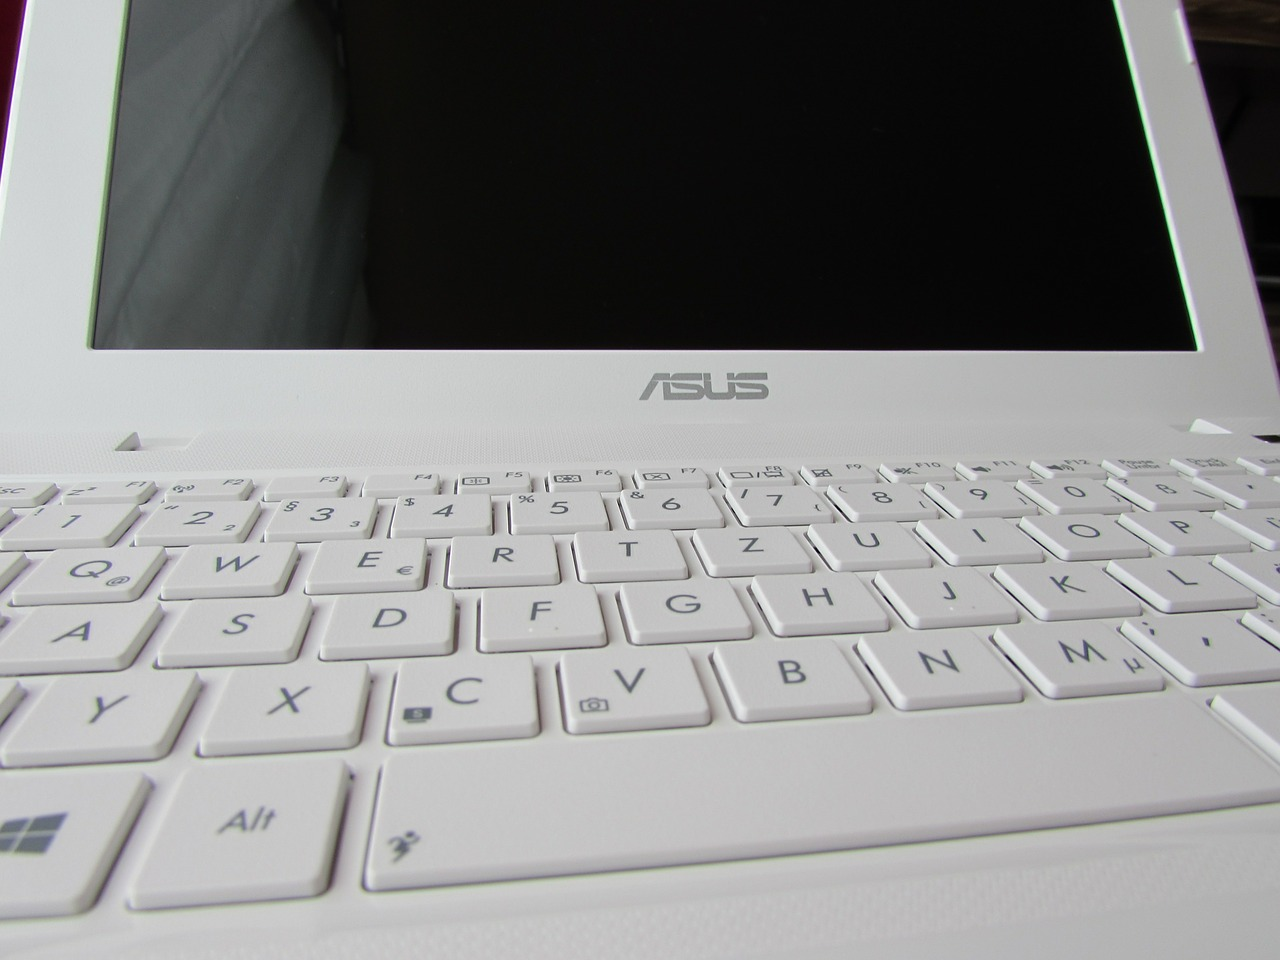 ASUS Vivobook F510UA Review: Features, Specifications & Prices